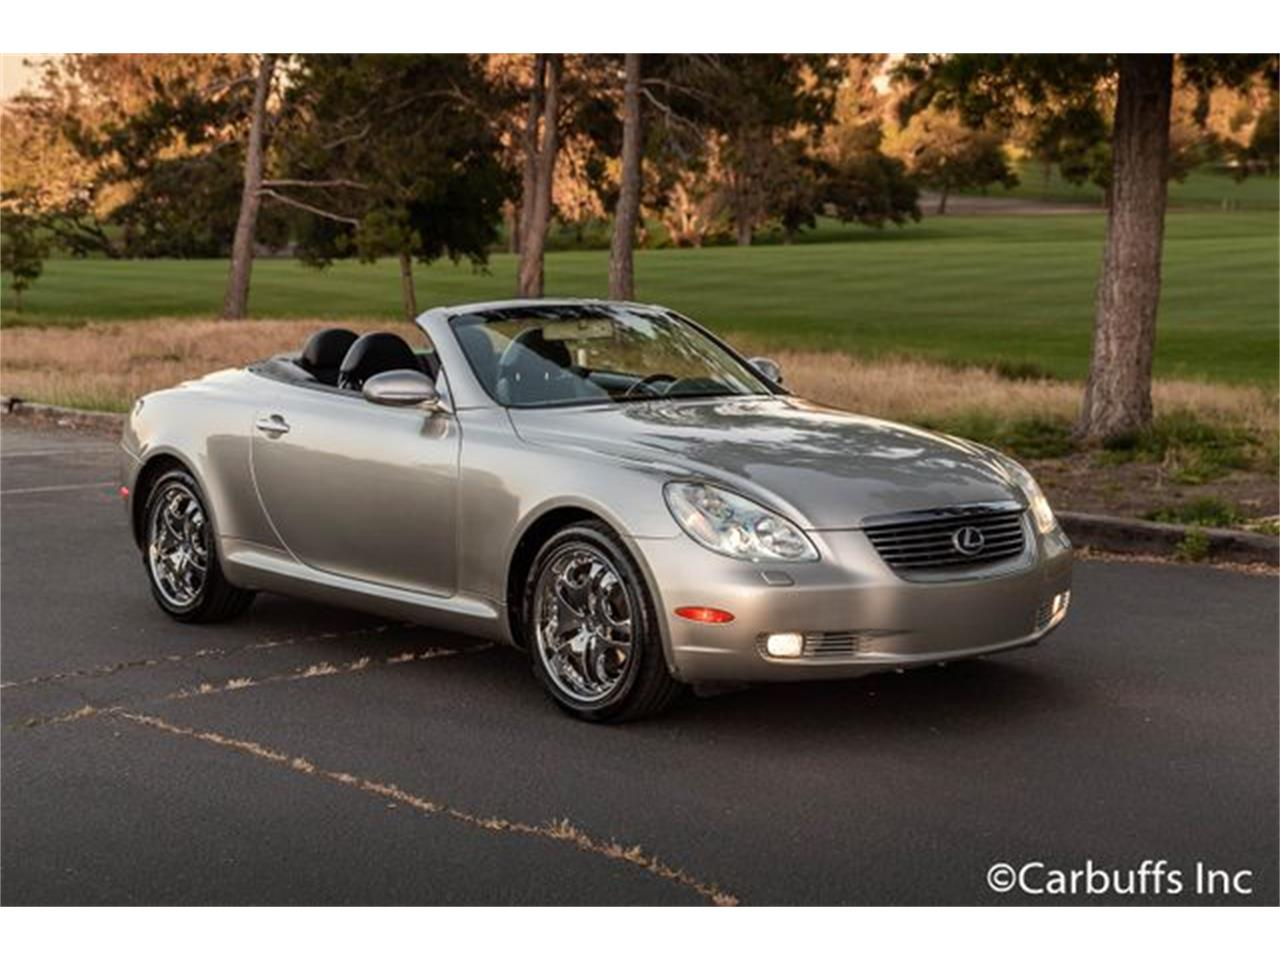 Large Picture of '04 Lexus SC400 located in Concord California - $14,950.00 - QKET